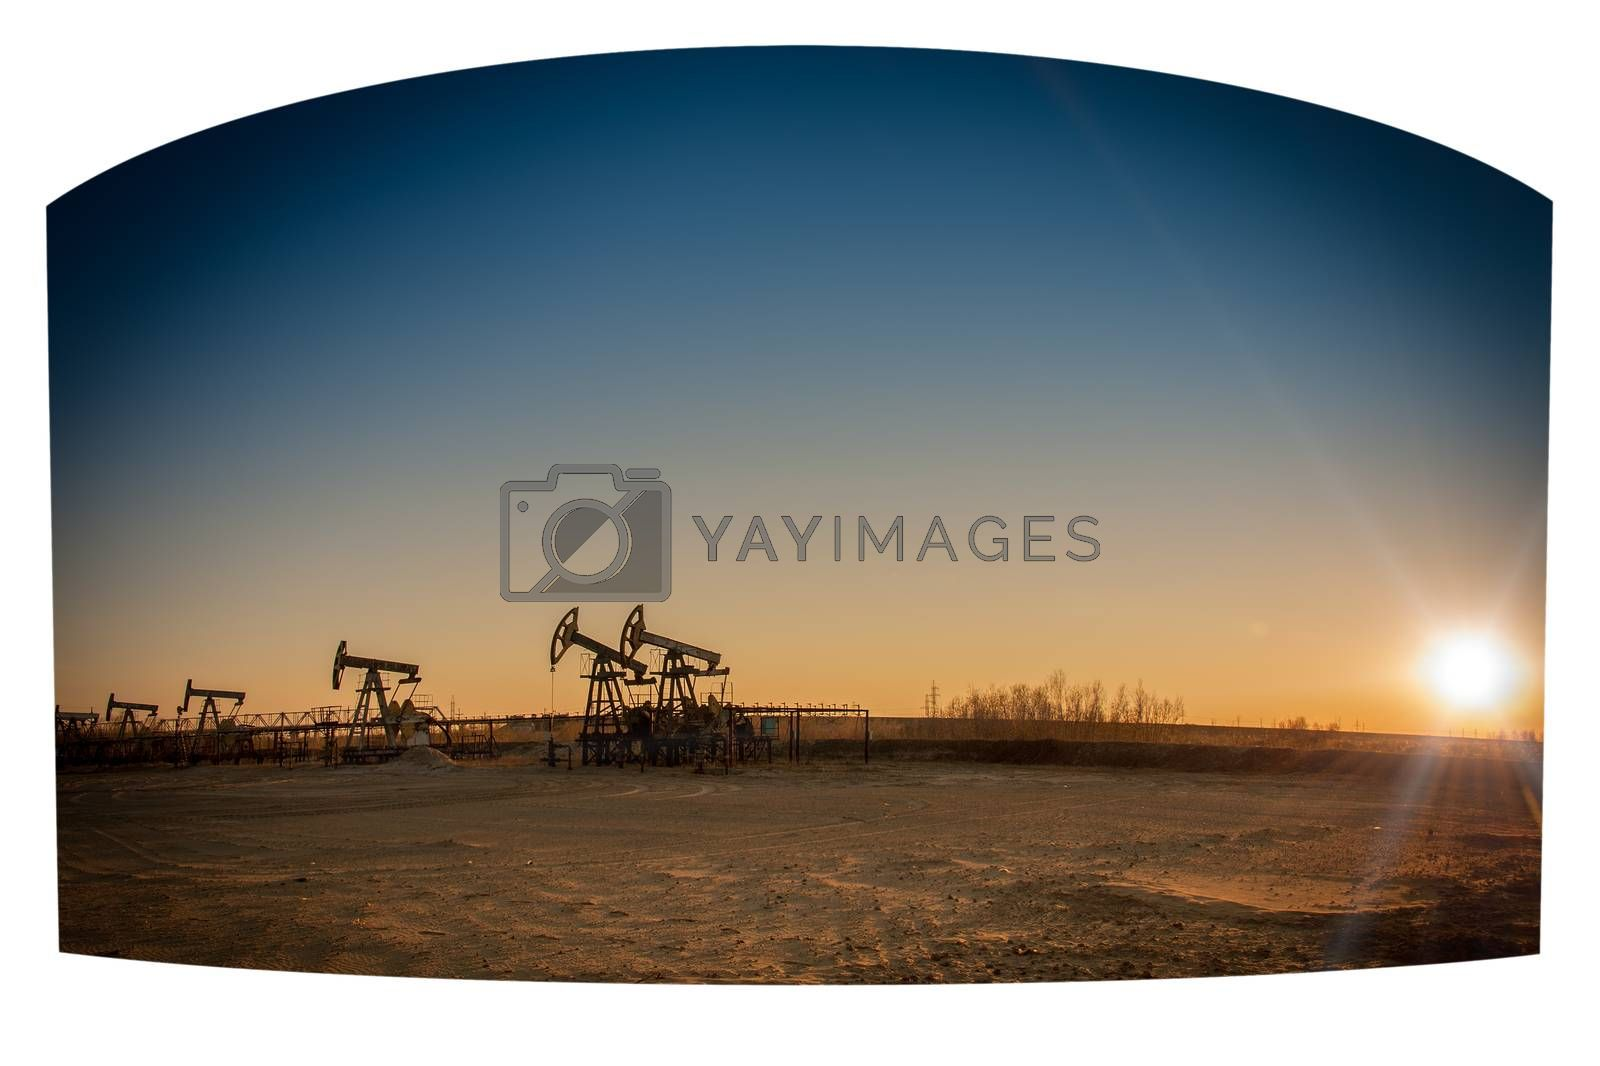 Oil pumps on the sunset sky background.